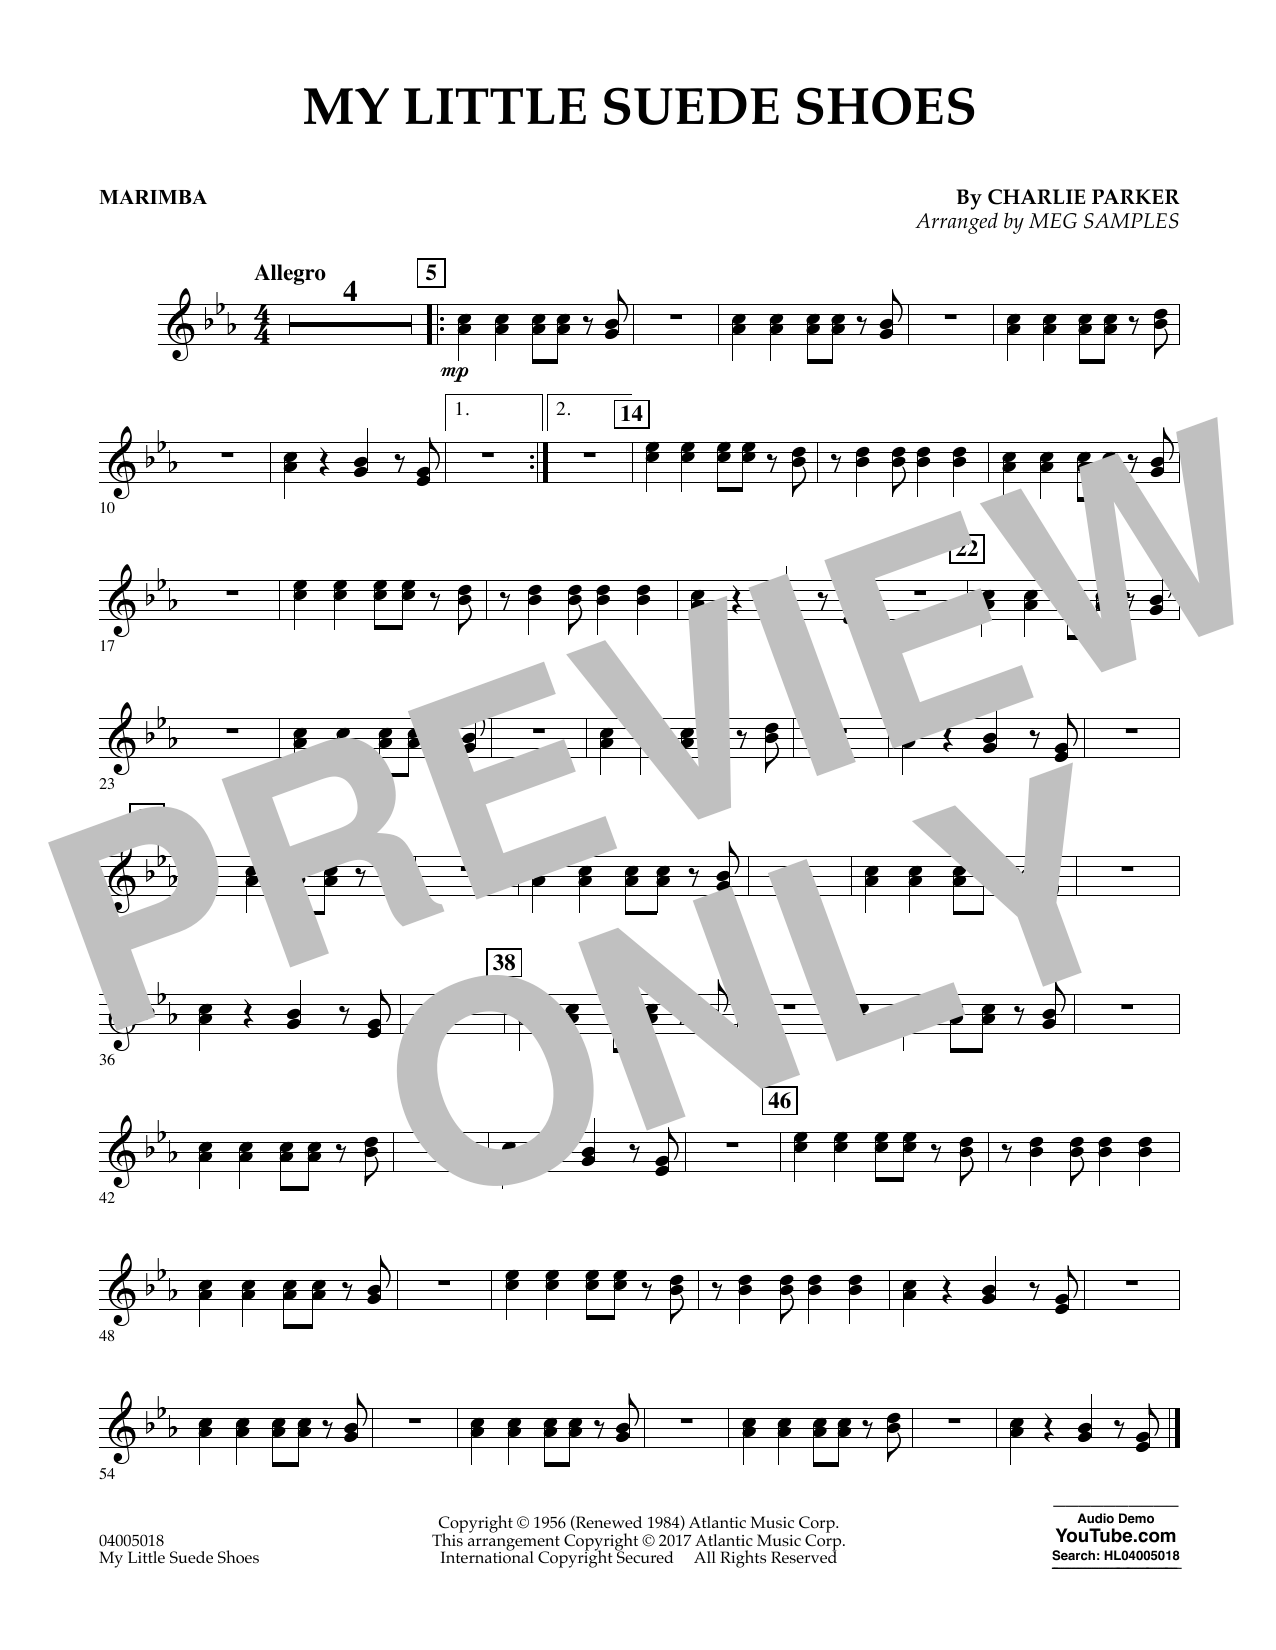 My Little Suede Shoes - Marimba Sheet Music